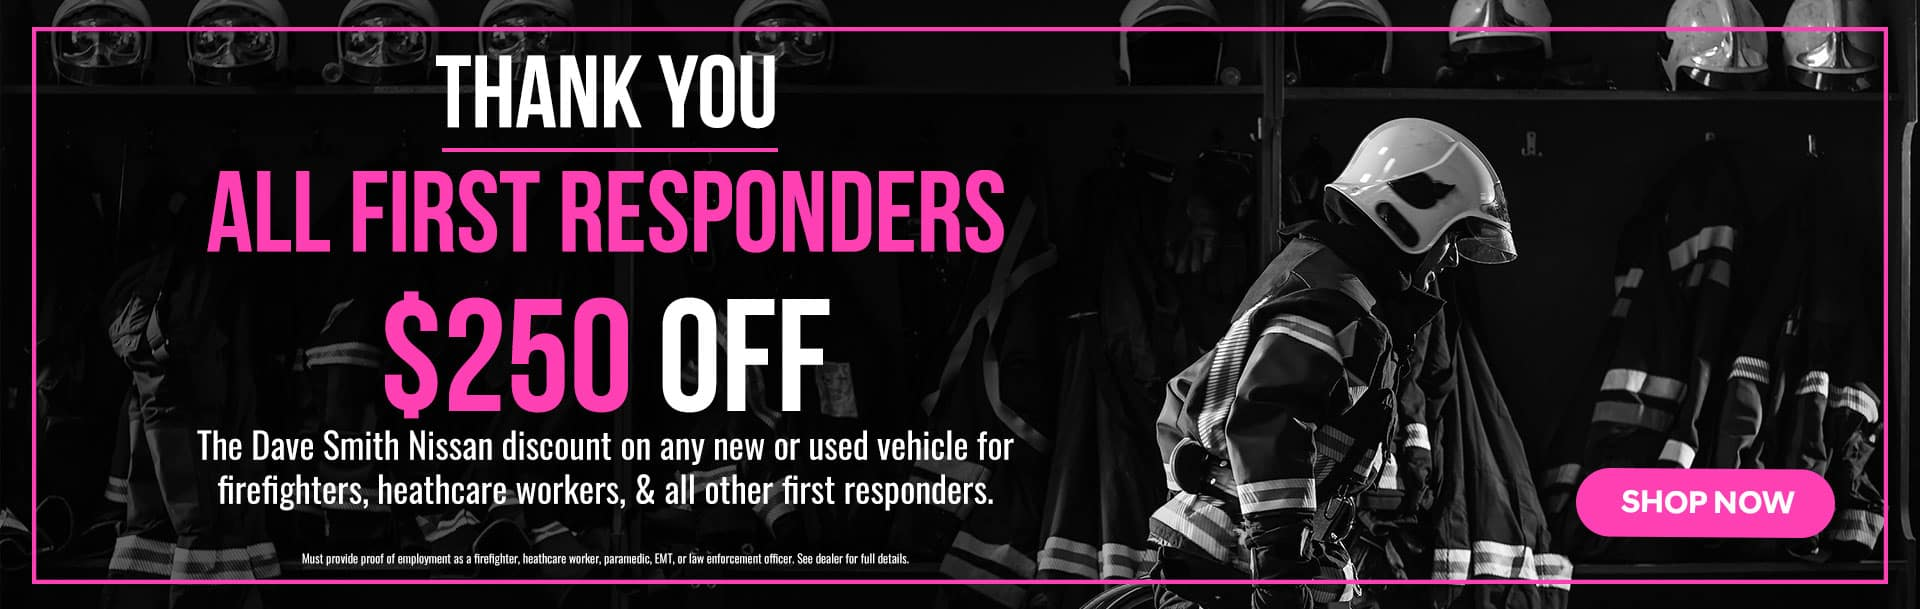 Car Discount for First Responders in Spokane, WA